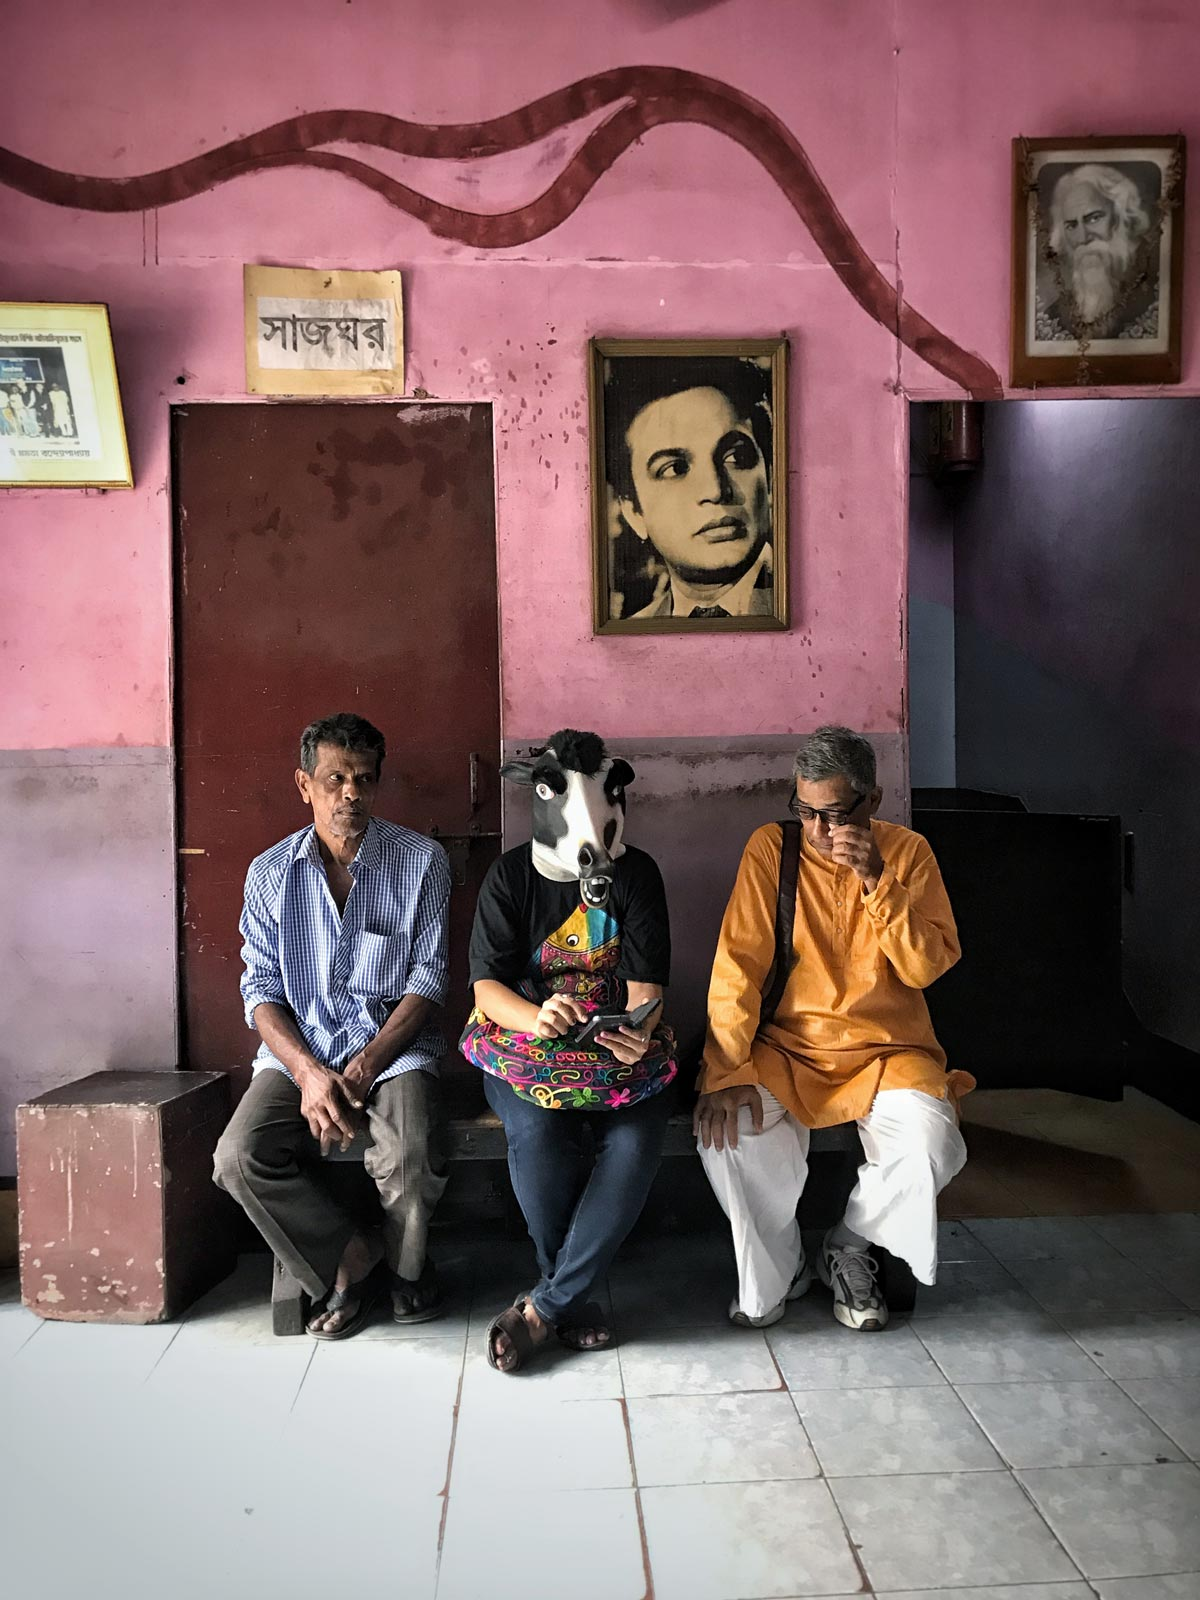 Sujatro Ghosh, Photographer, A Curate's Egg